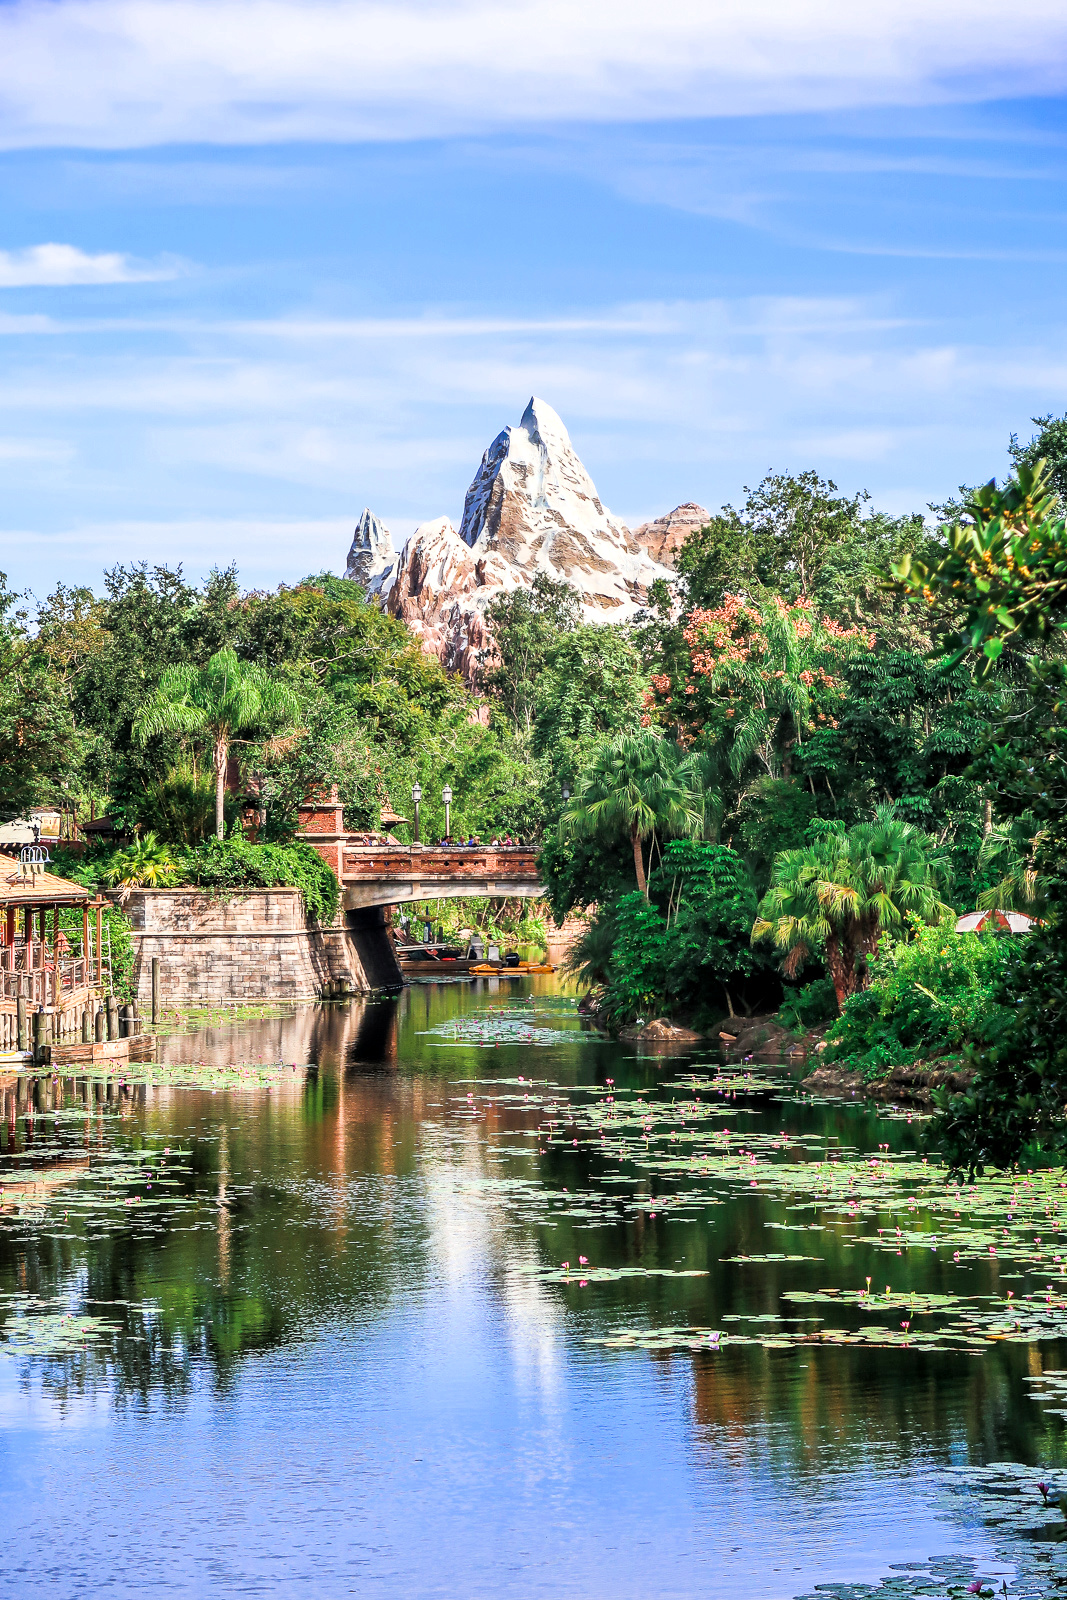 Disney's Animal Kingdom Travel Guide Eats Food Everest Expedition